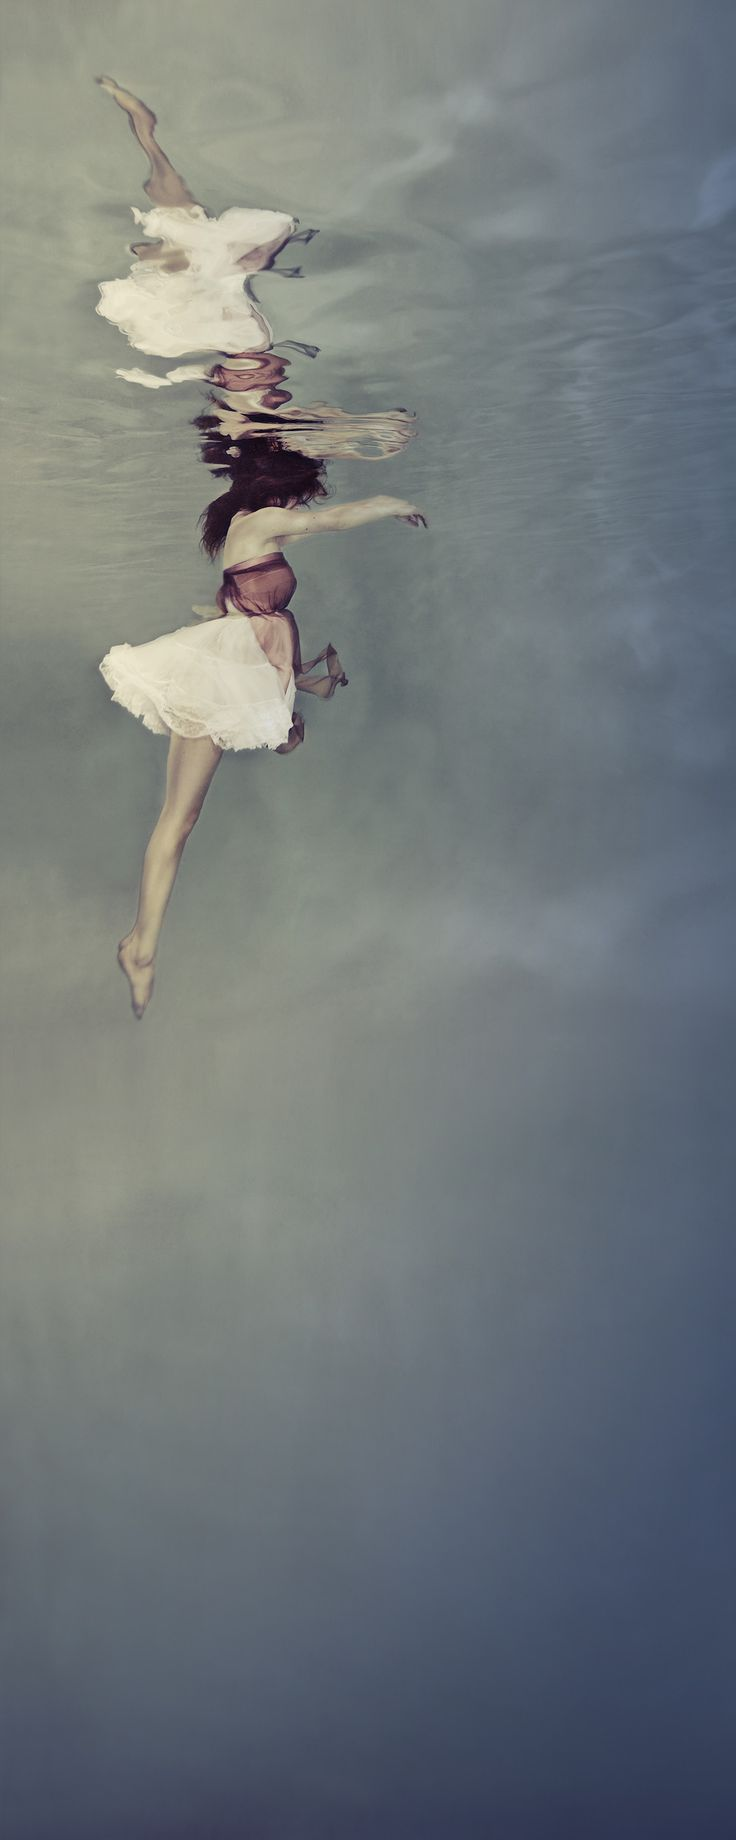 Fine Art Underwater Photography by Mallory Morrison #inspiration #photography